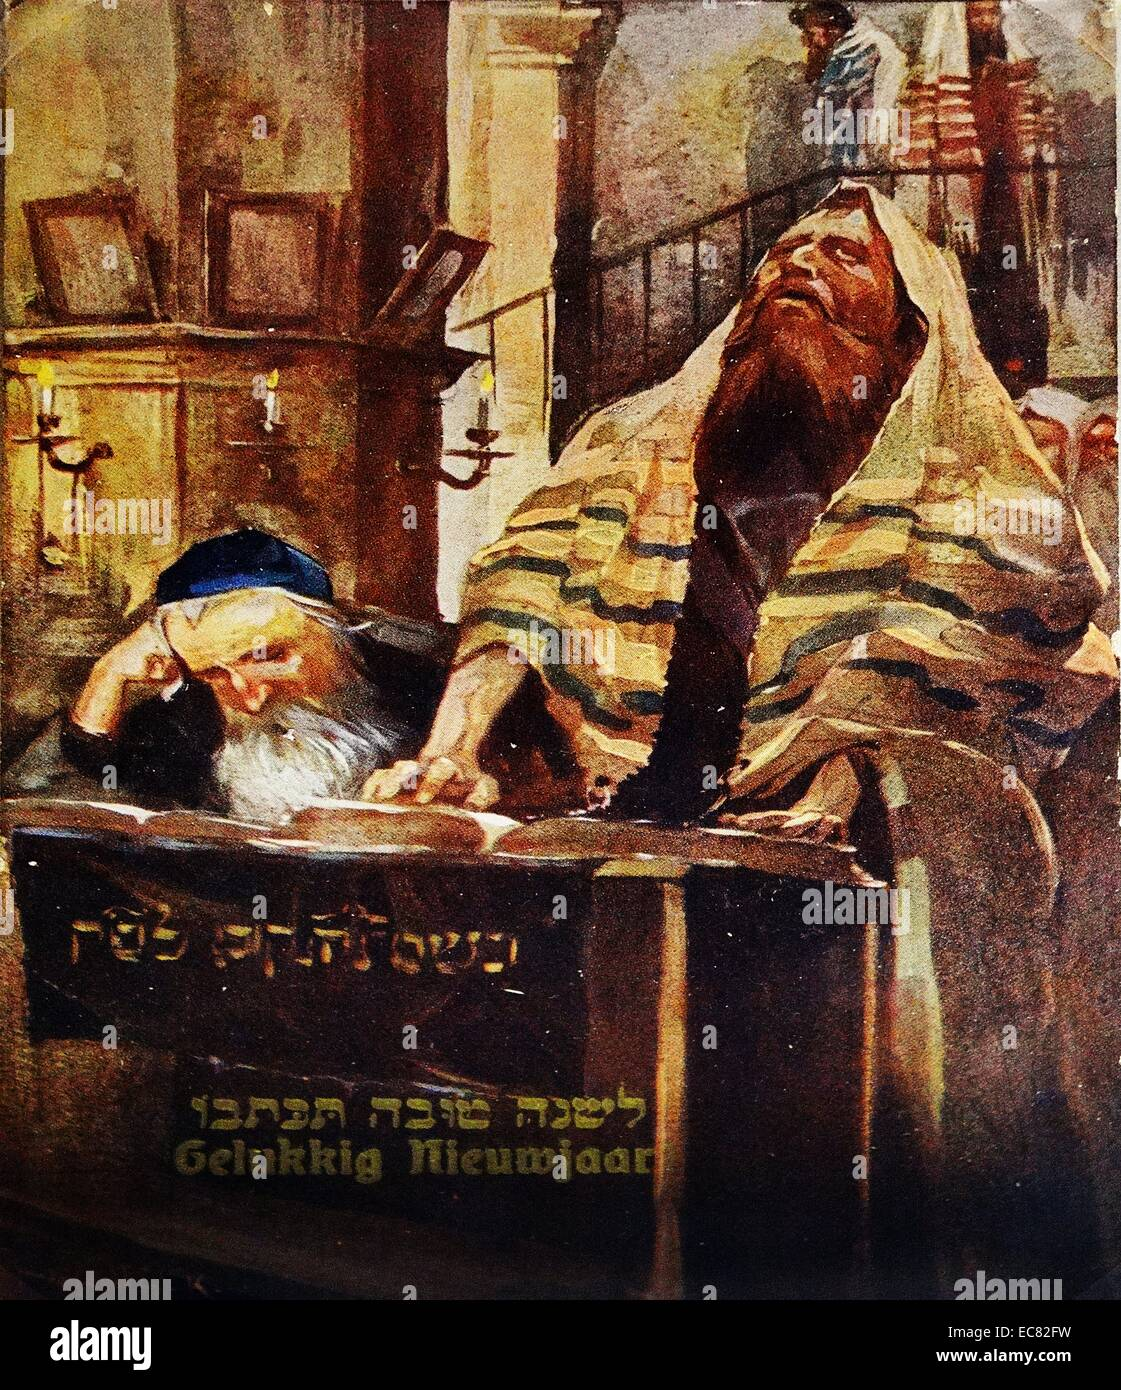 Dutch New Year Card showing a rabbi in a synagogue. He is wearing a traditional prayer shawl (tallit) c 1900. - Stock Image